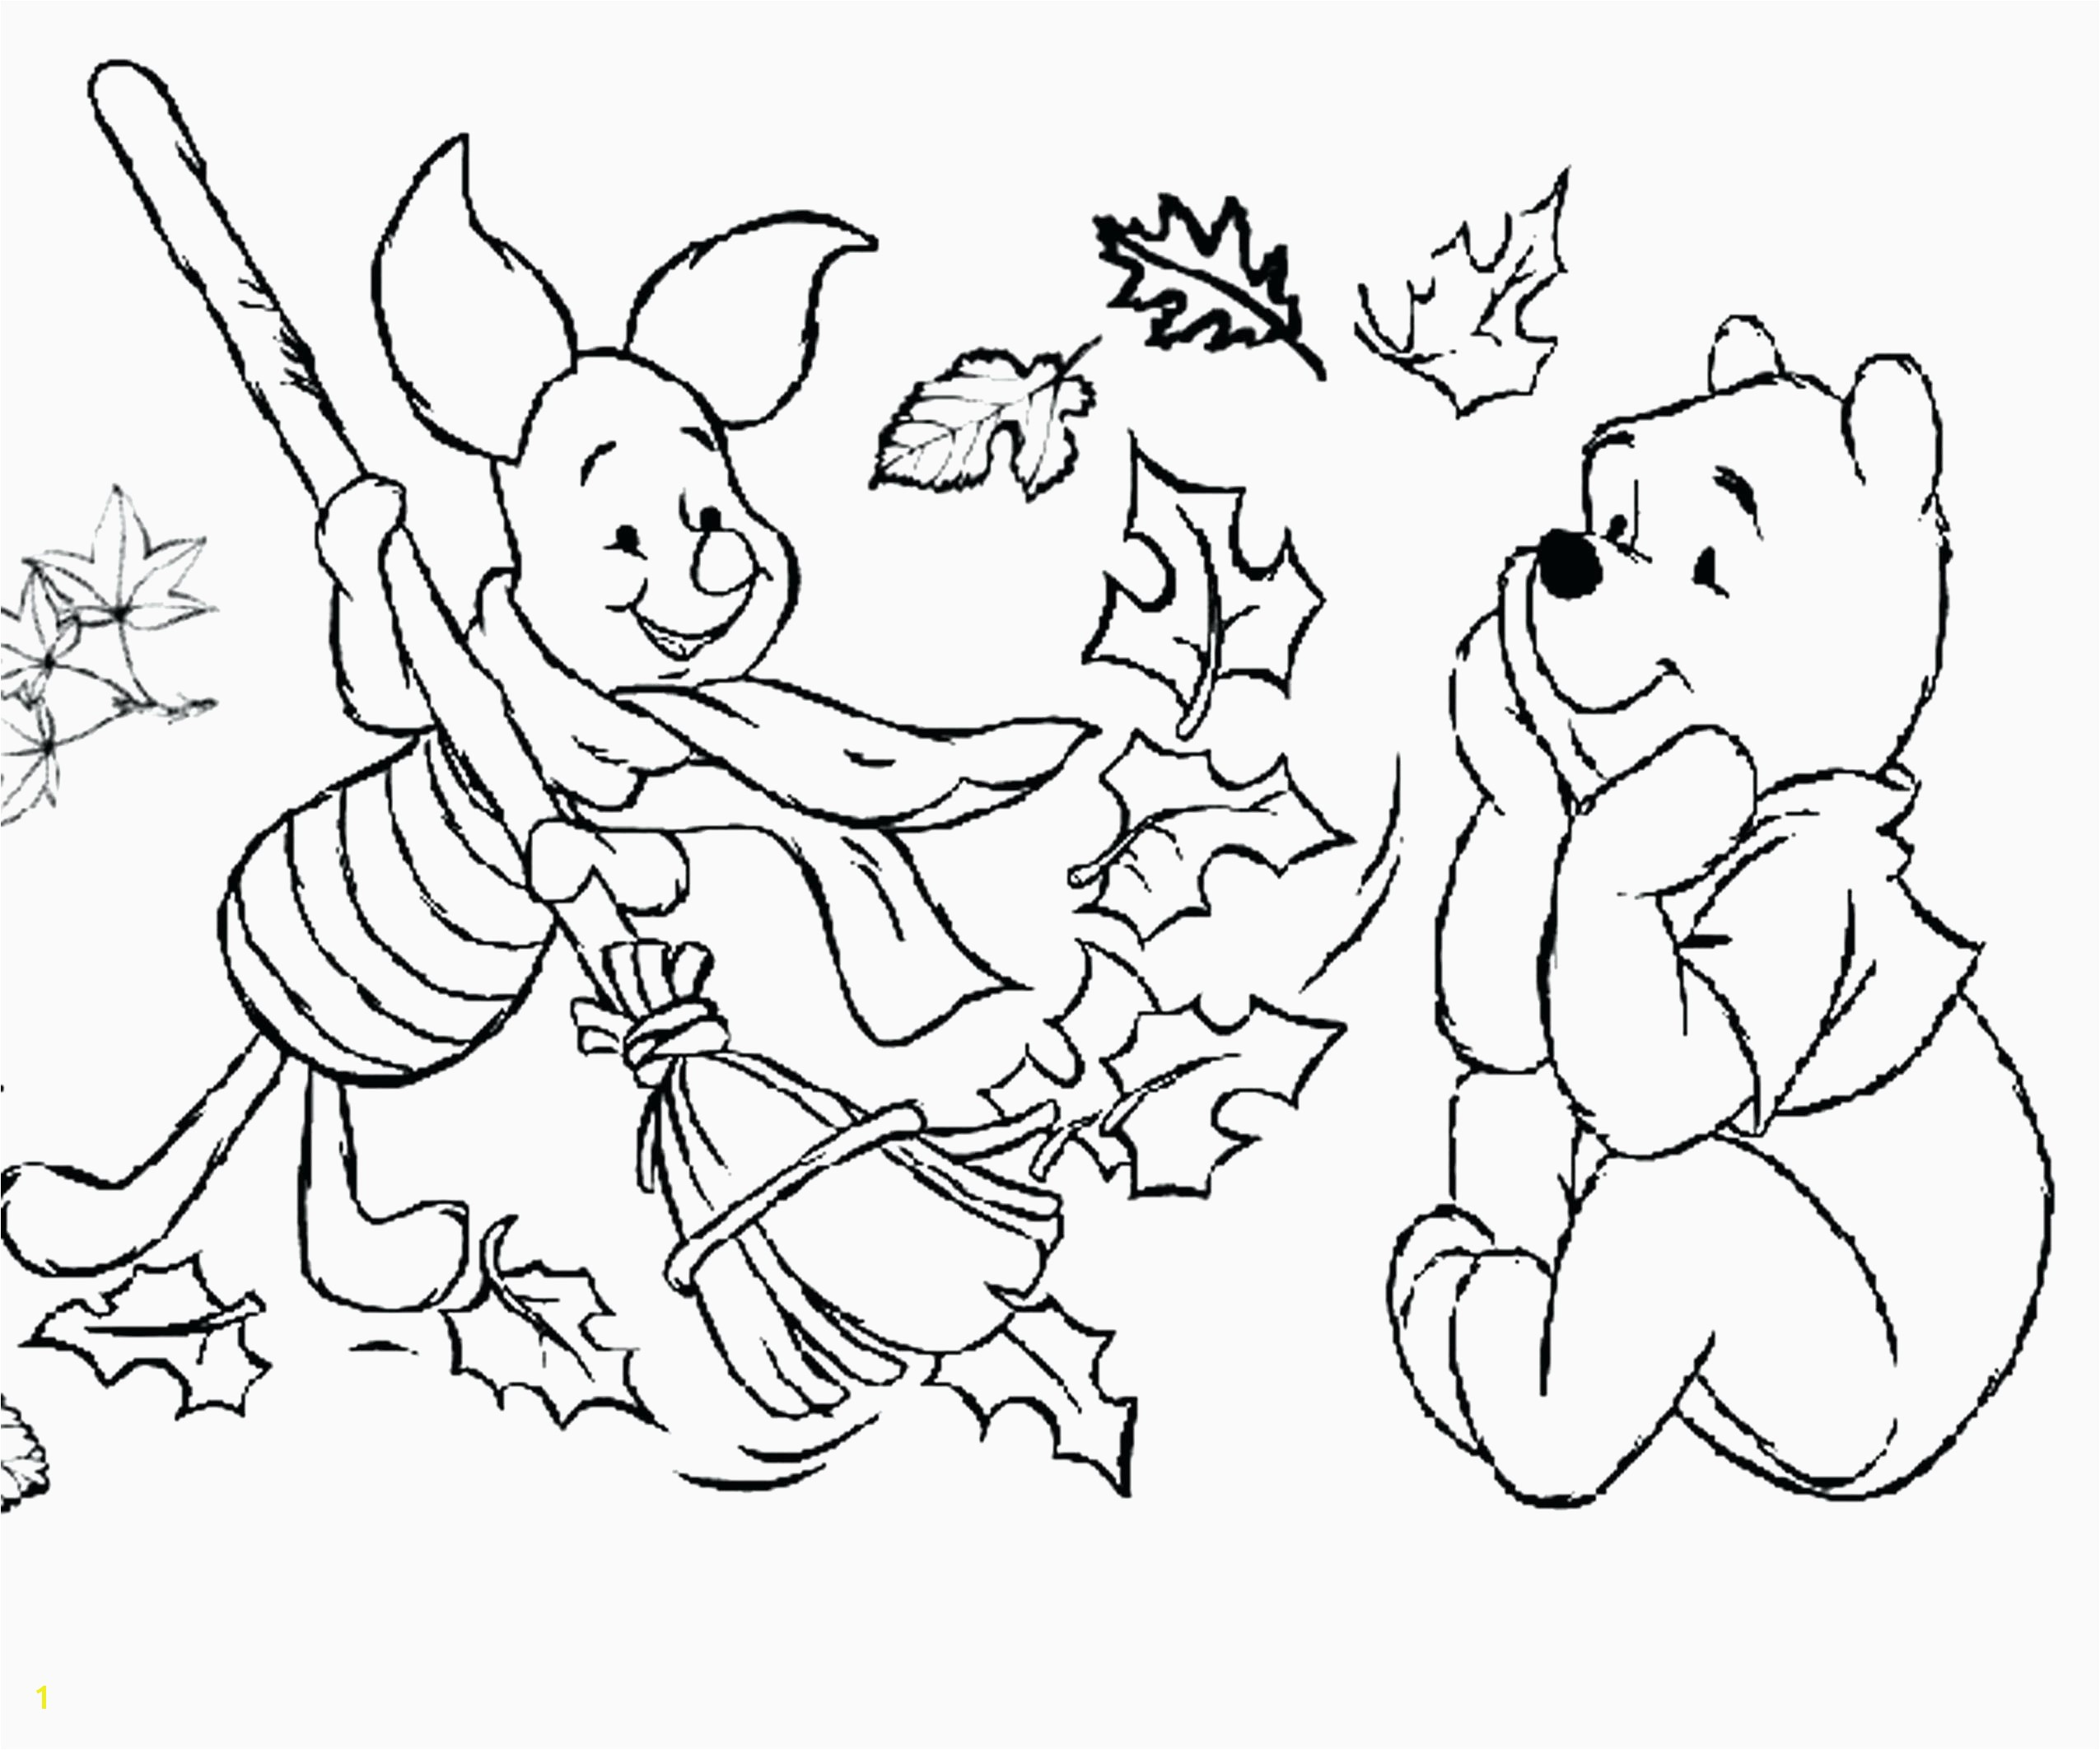 Printable Heart Coloring Pages Fresh Printable Awesome Coloring Page for Adult Od Kids Simple Floral s